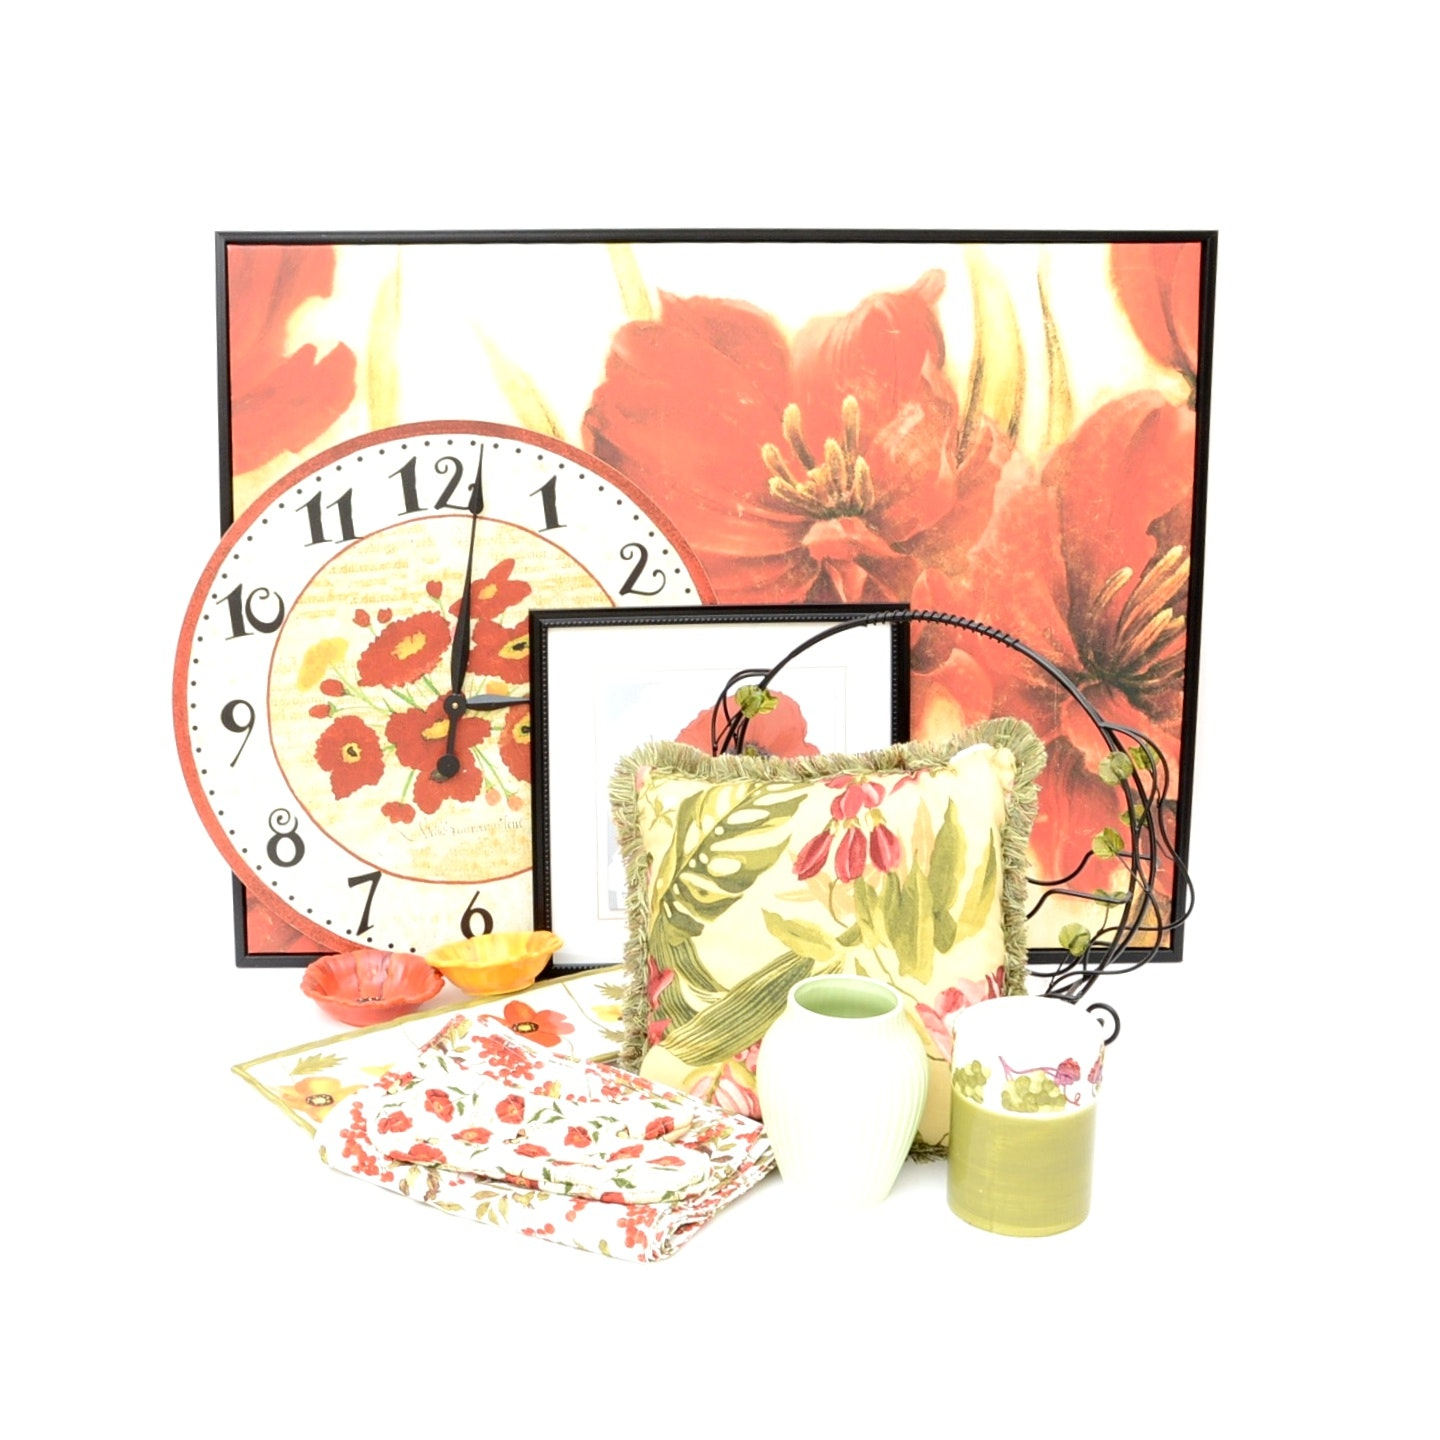 Red Floral Decor, Including Poppy Clock, Framed Artwork, and Serving Ware